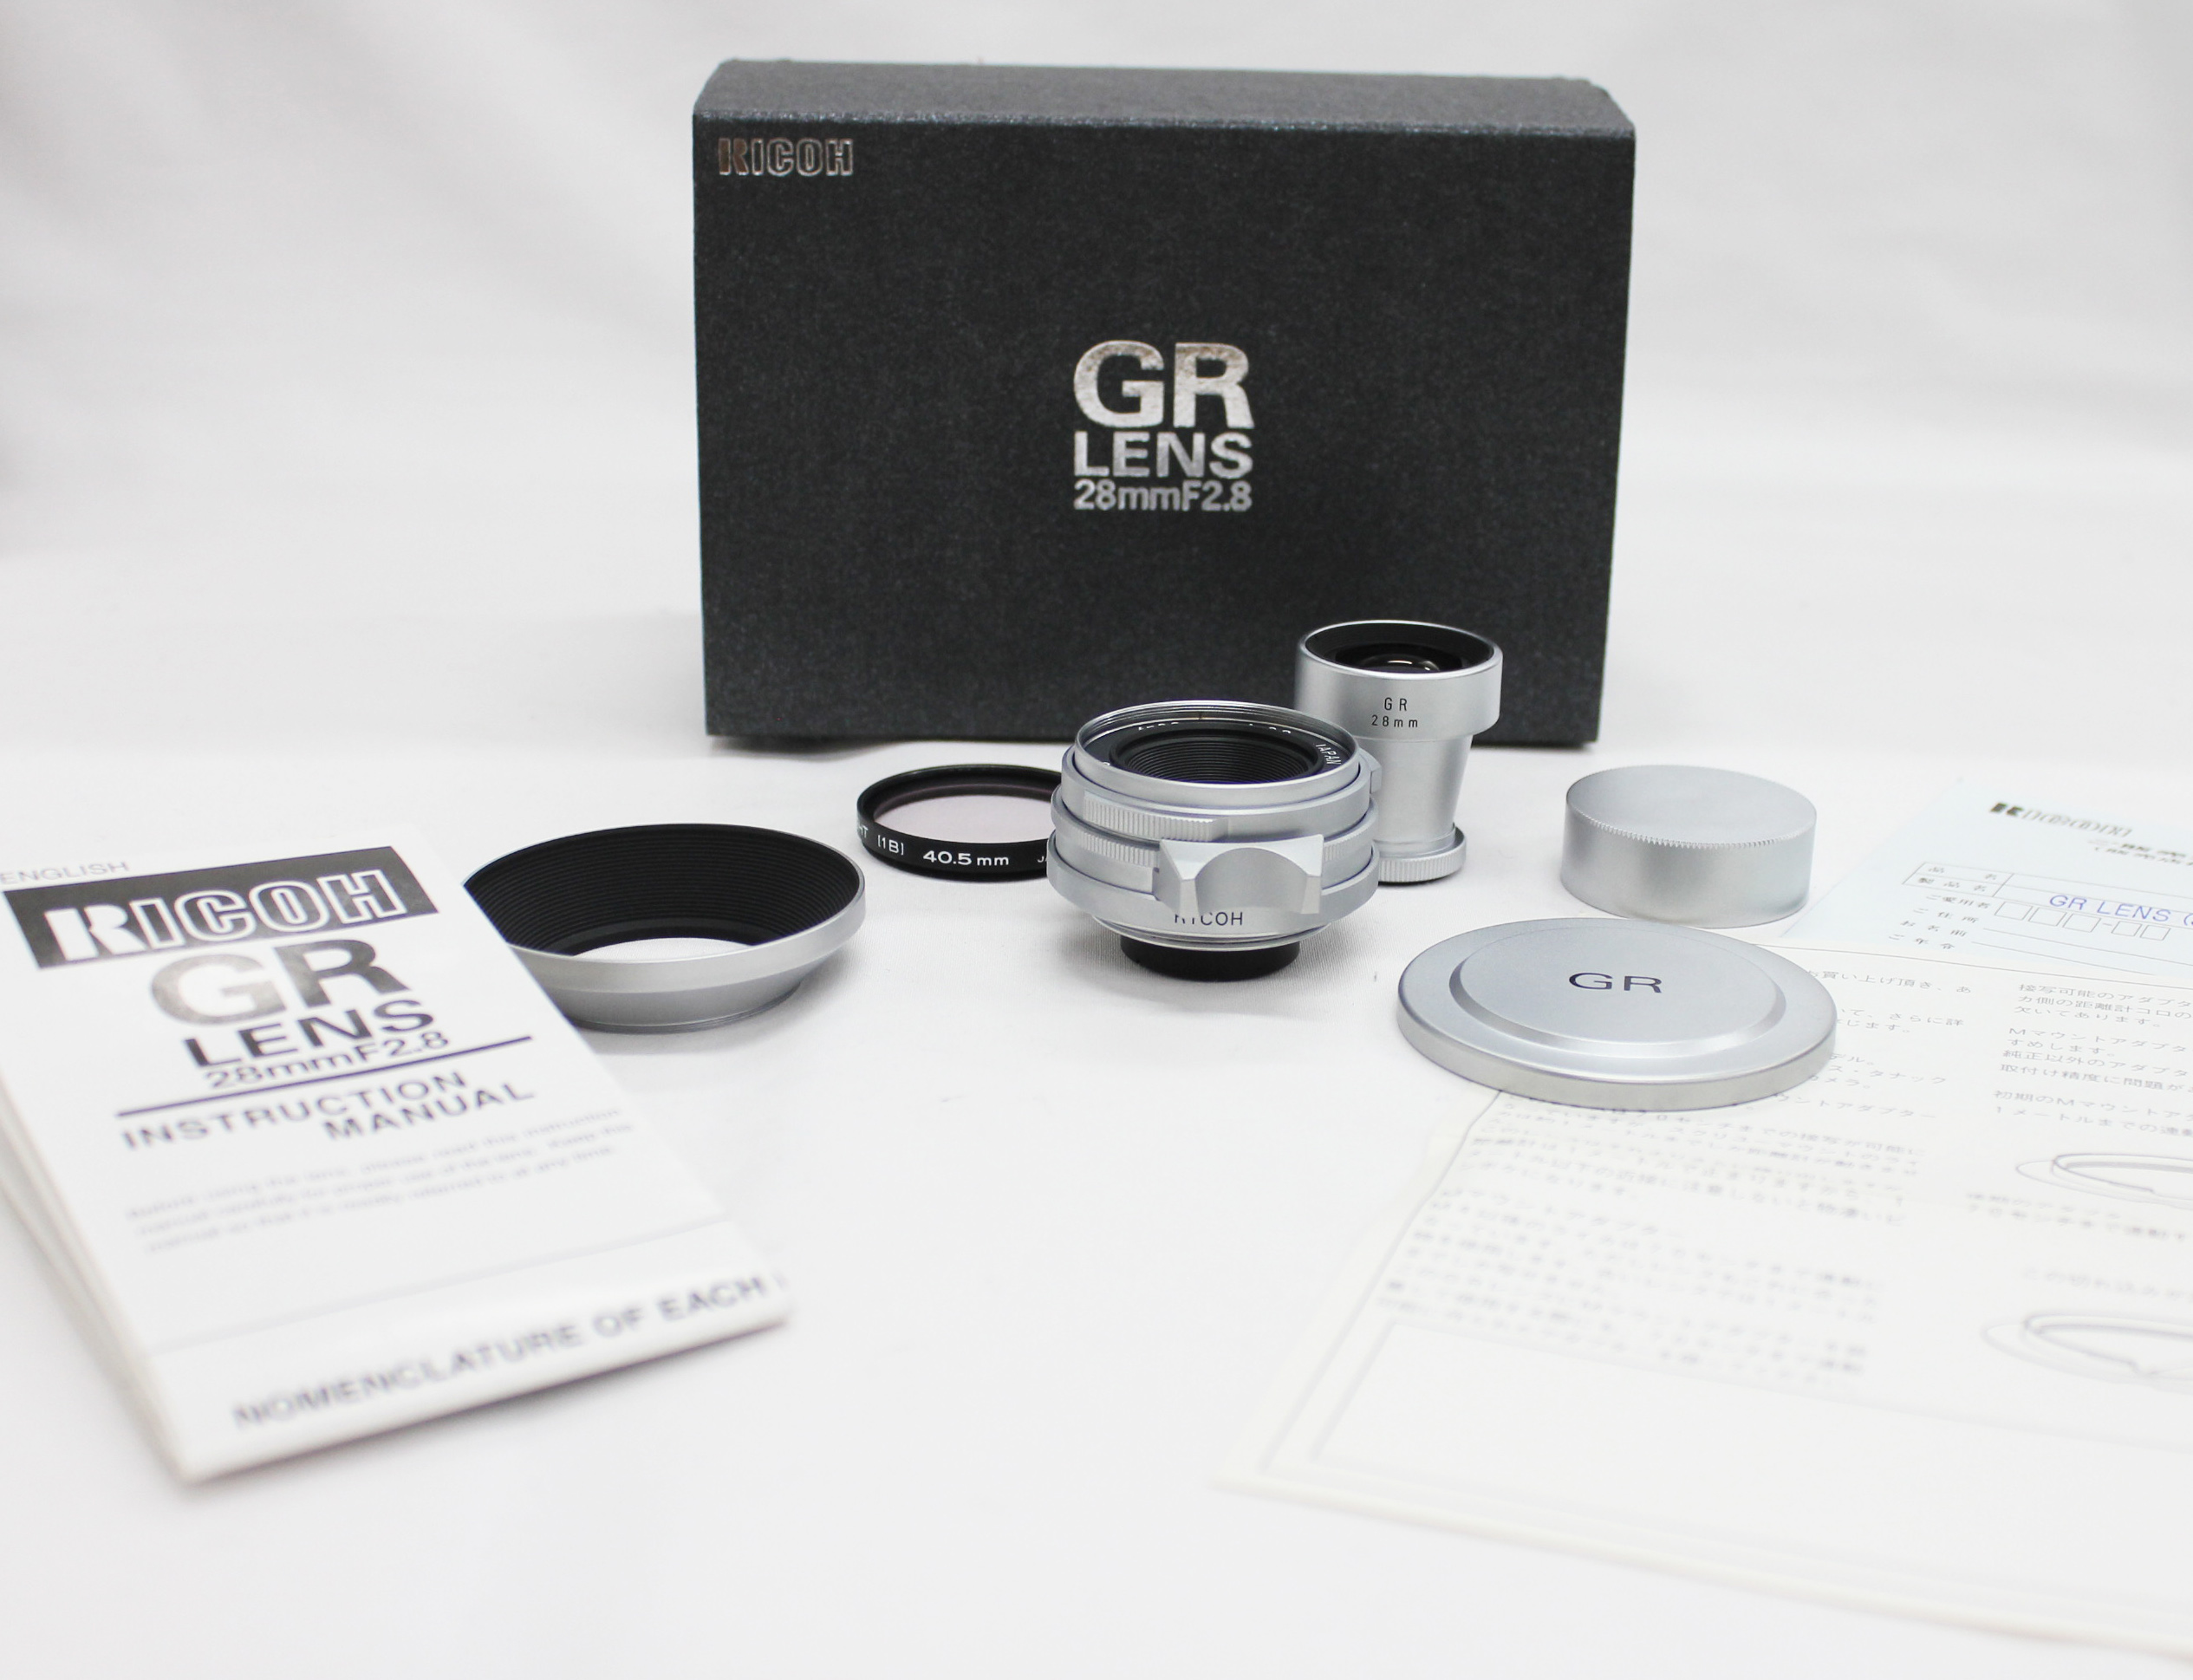 Japan Used Camera Shop | [Mint] Ricoh GR Lens 28mm F/2.8 for L39 LTM Leica Screw Mount with 28mm Finder in Box from Japan